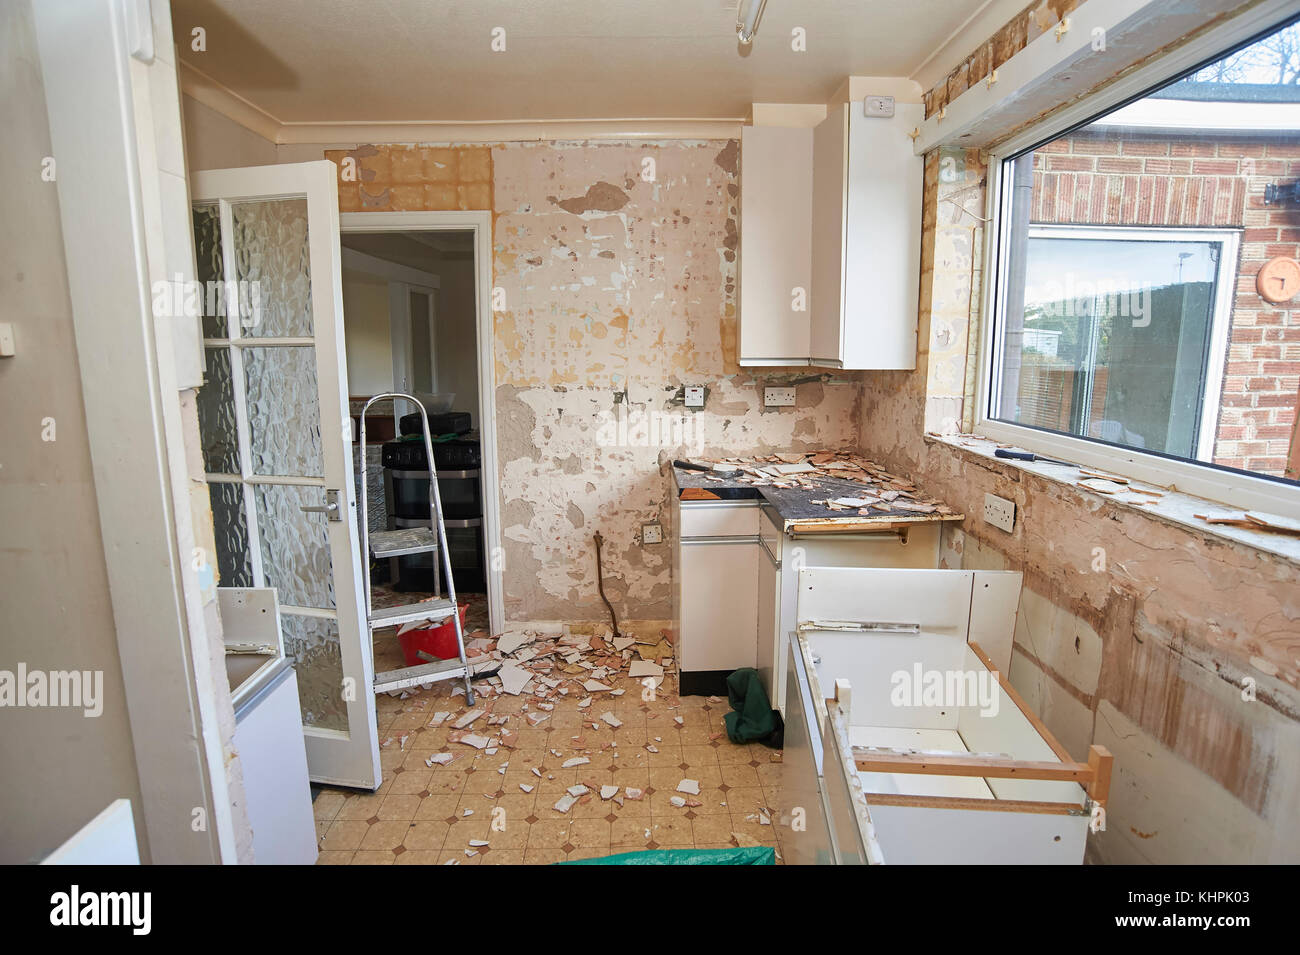 Residential property renovation, dismantling kitchen units and removing wall tiles - Stock Image